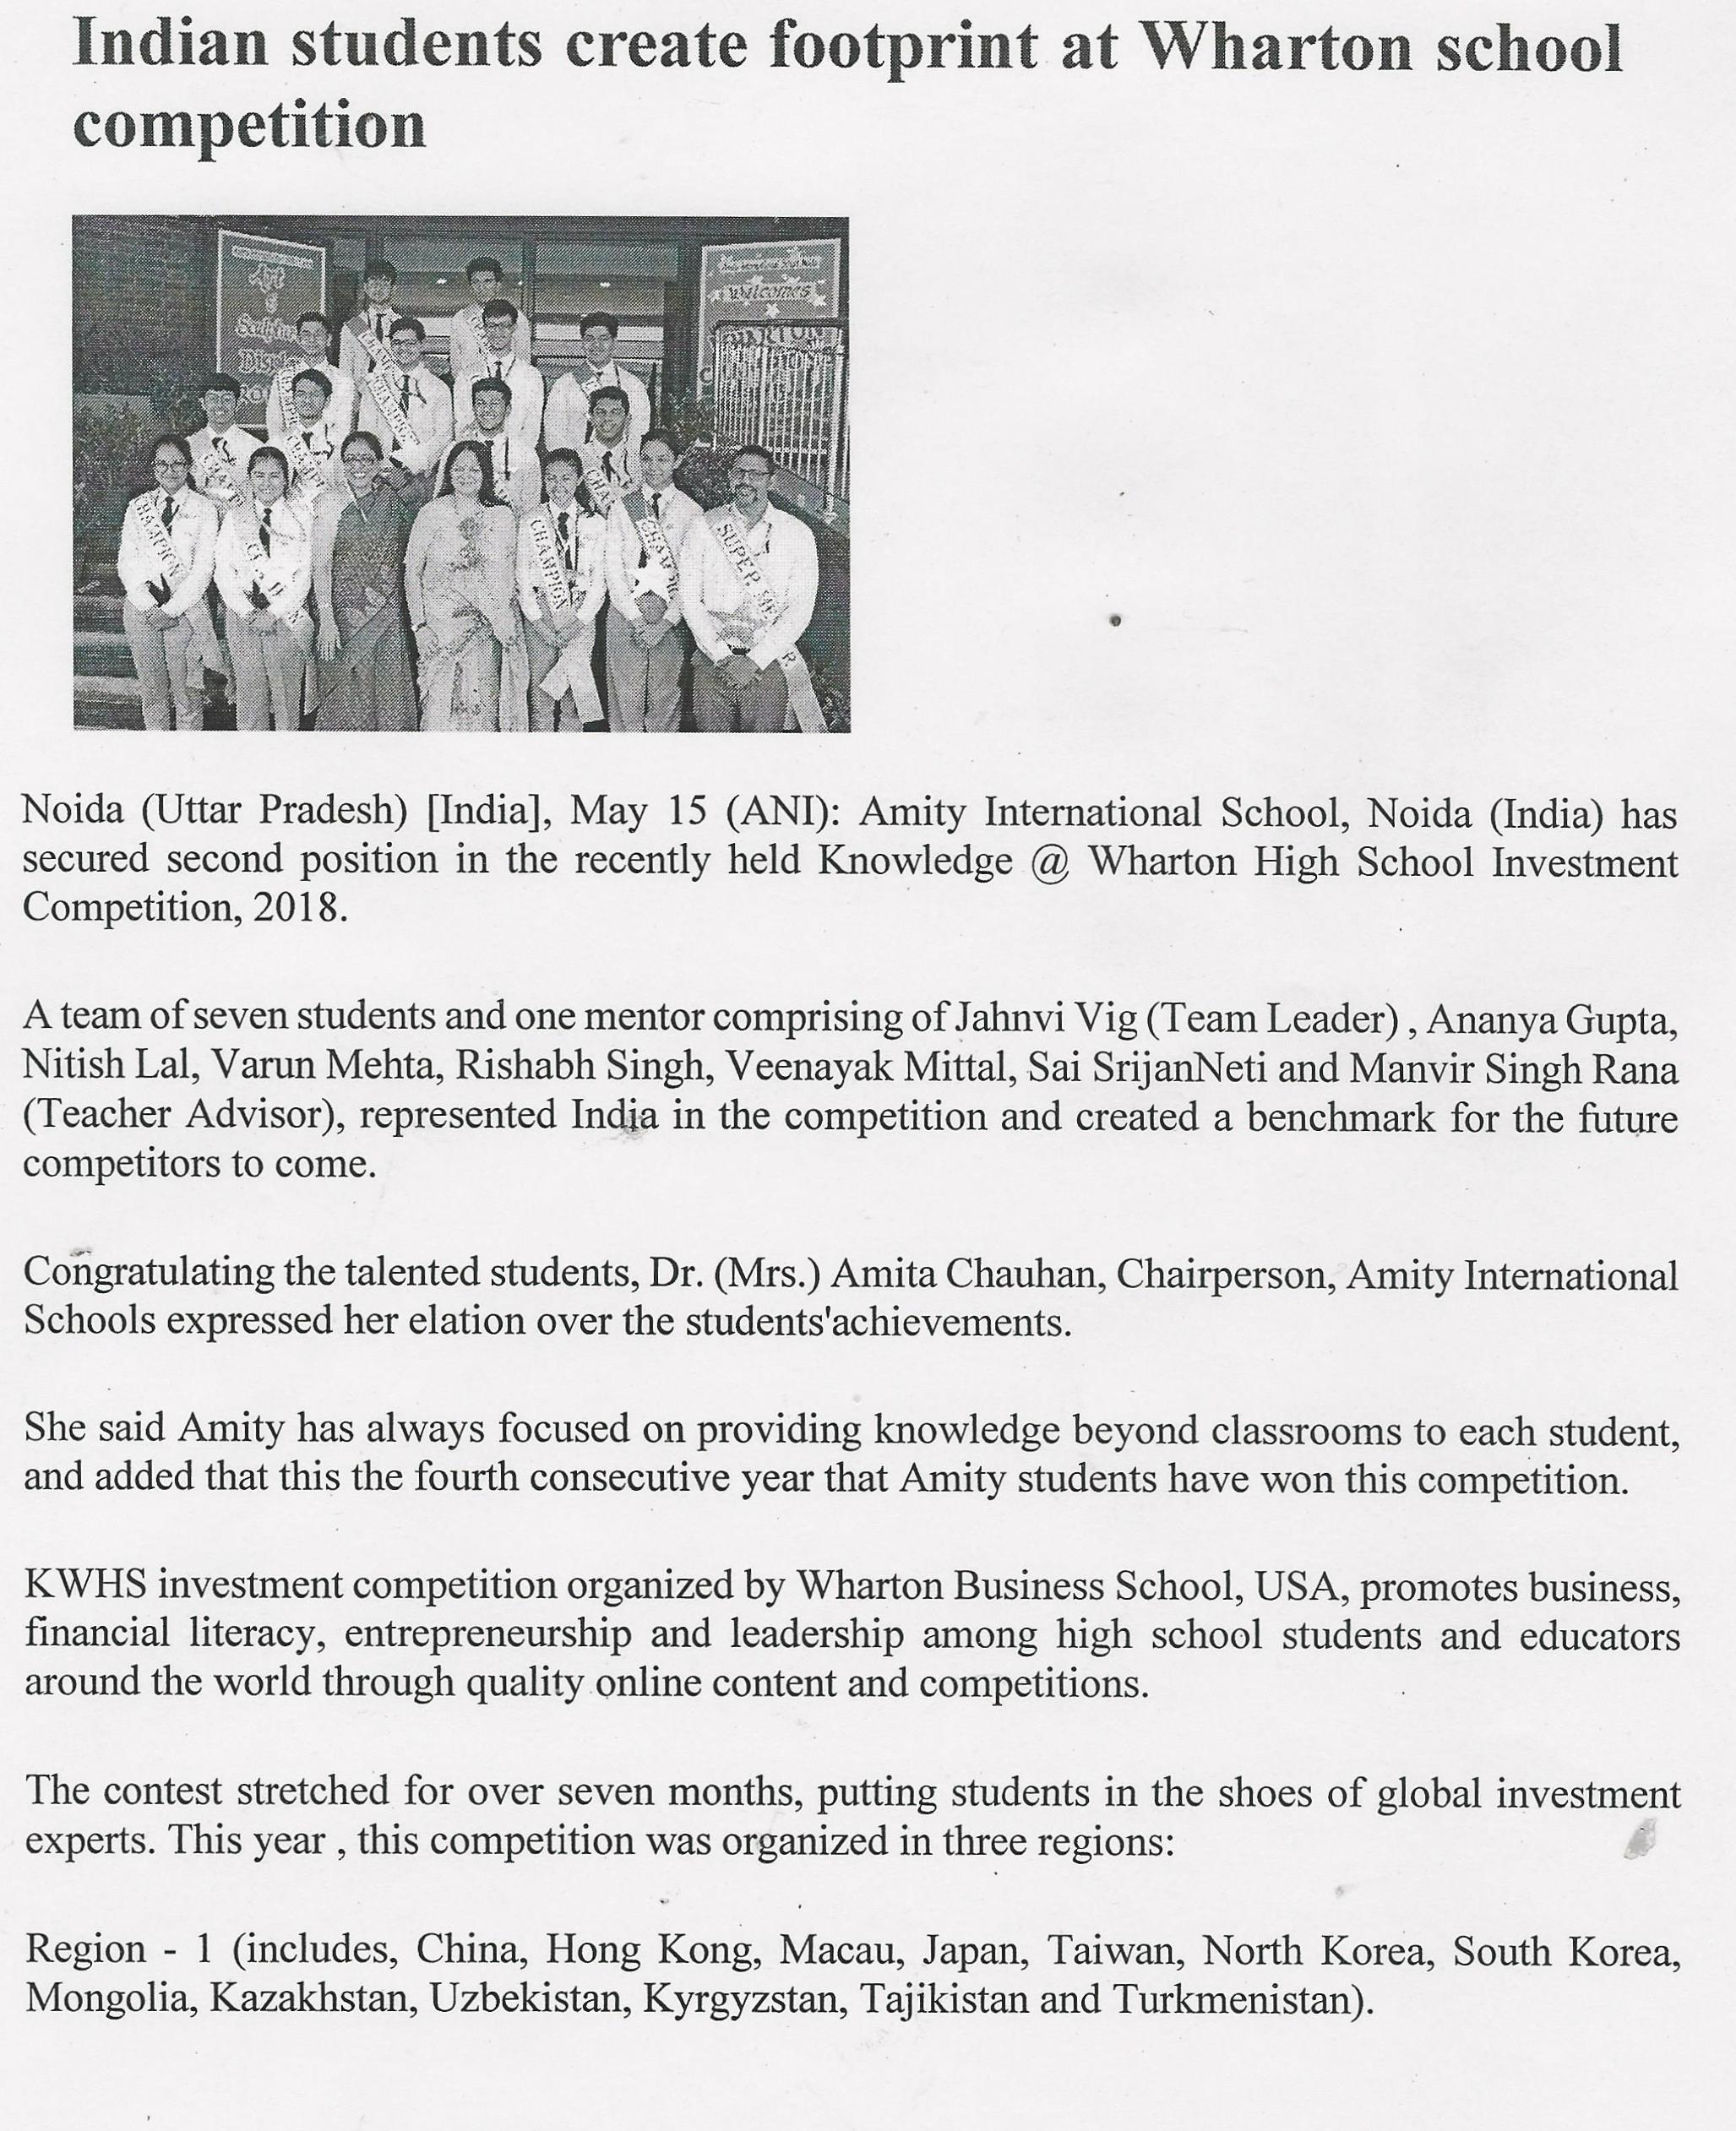 Students of AIS, Noida win 2nd position globally in KWHS